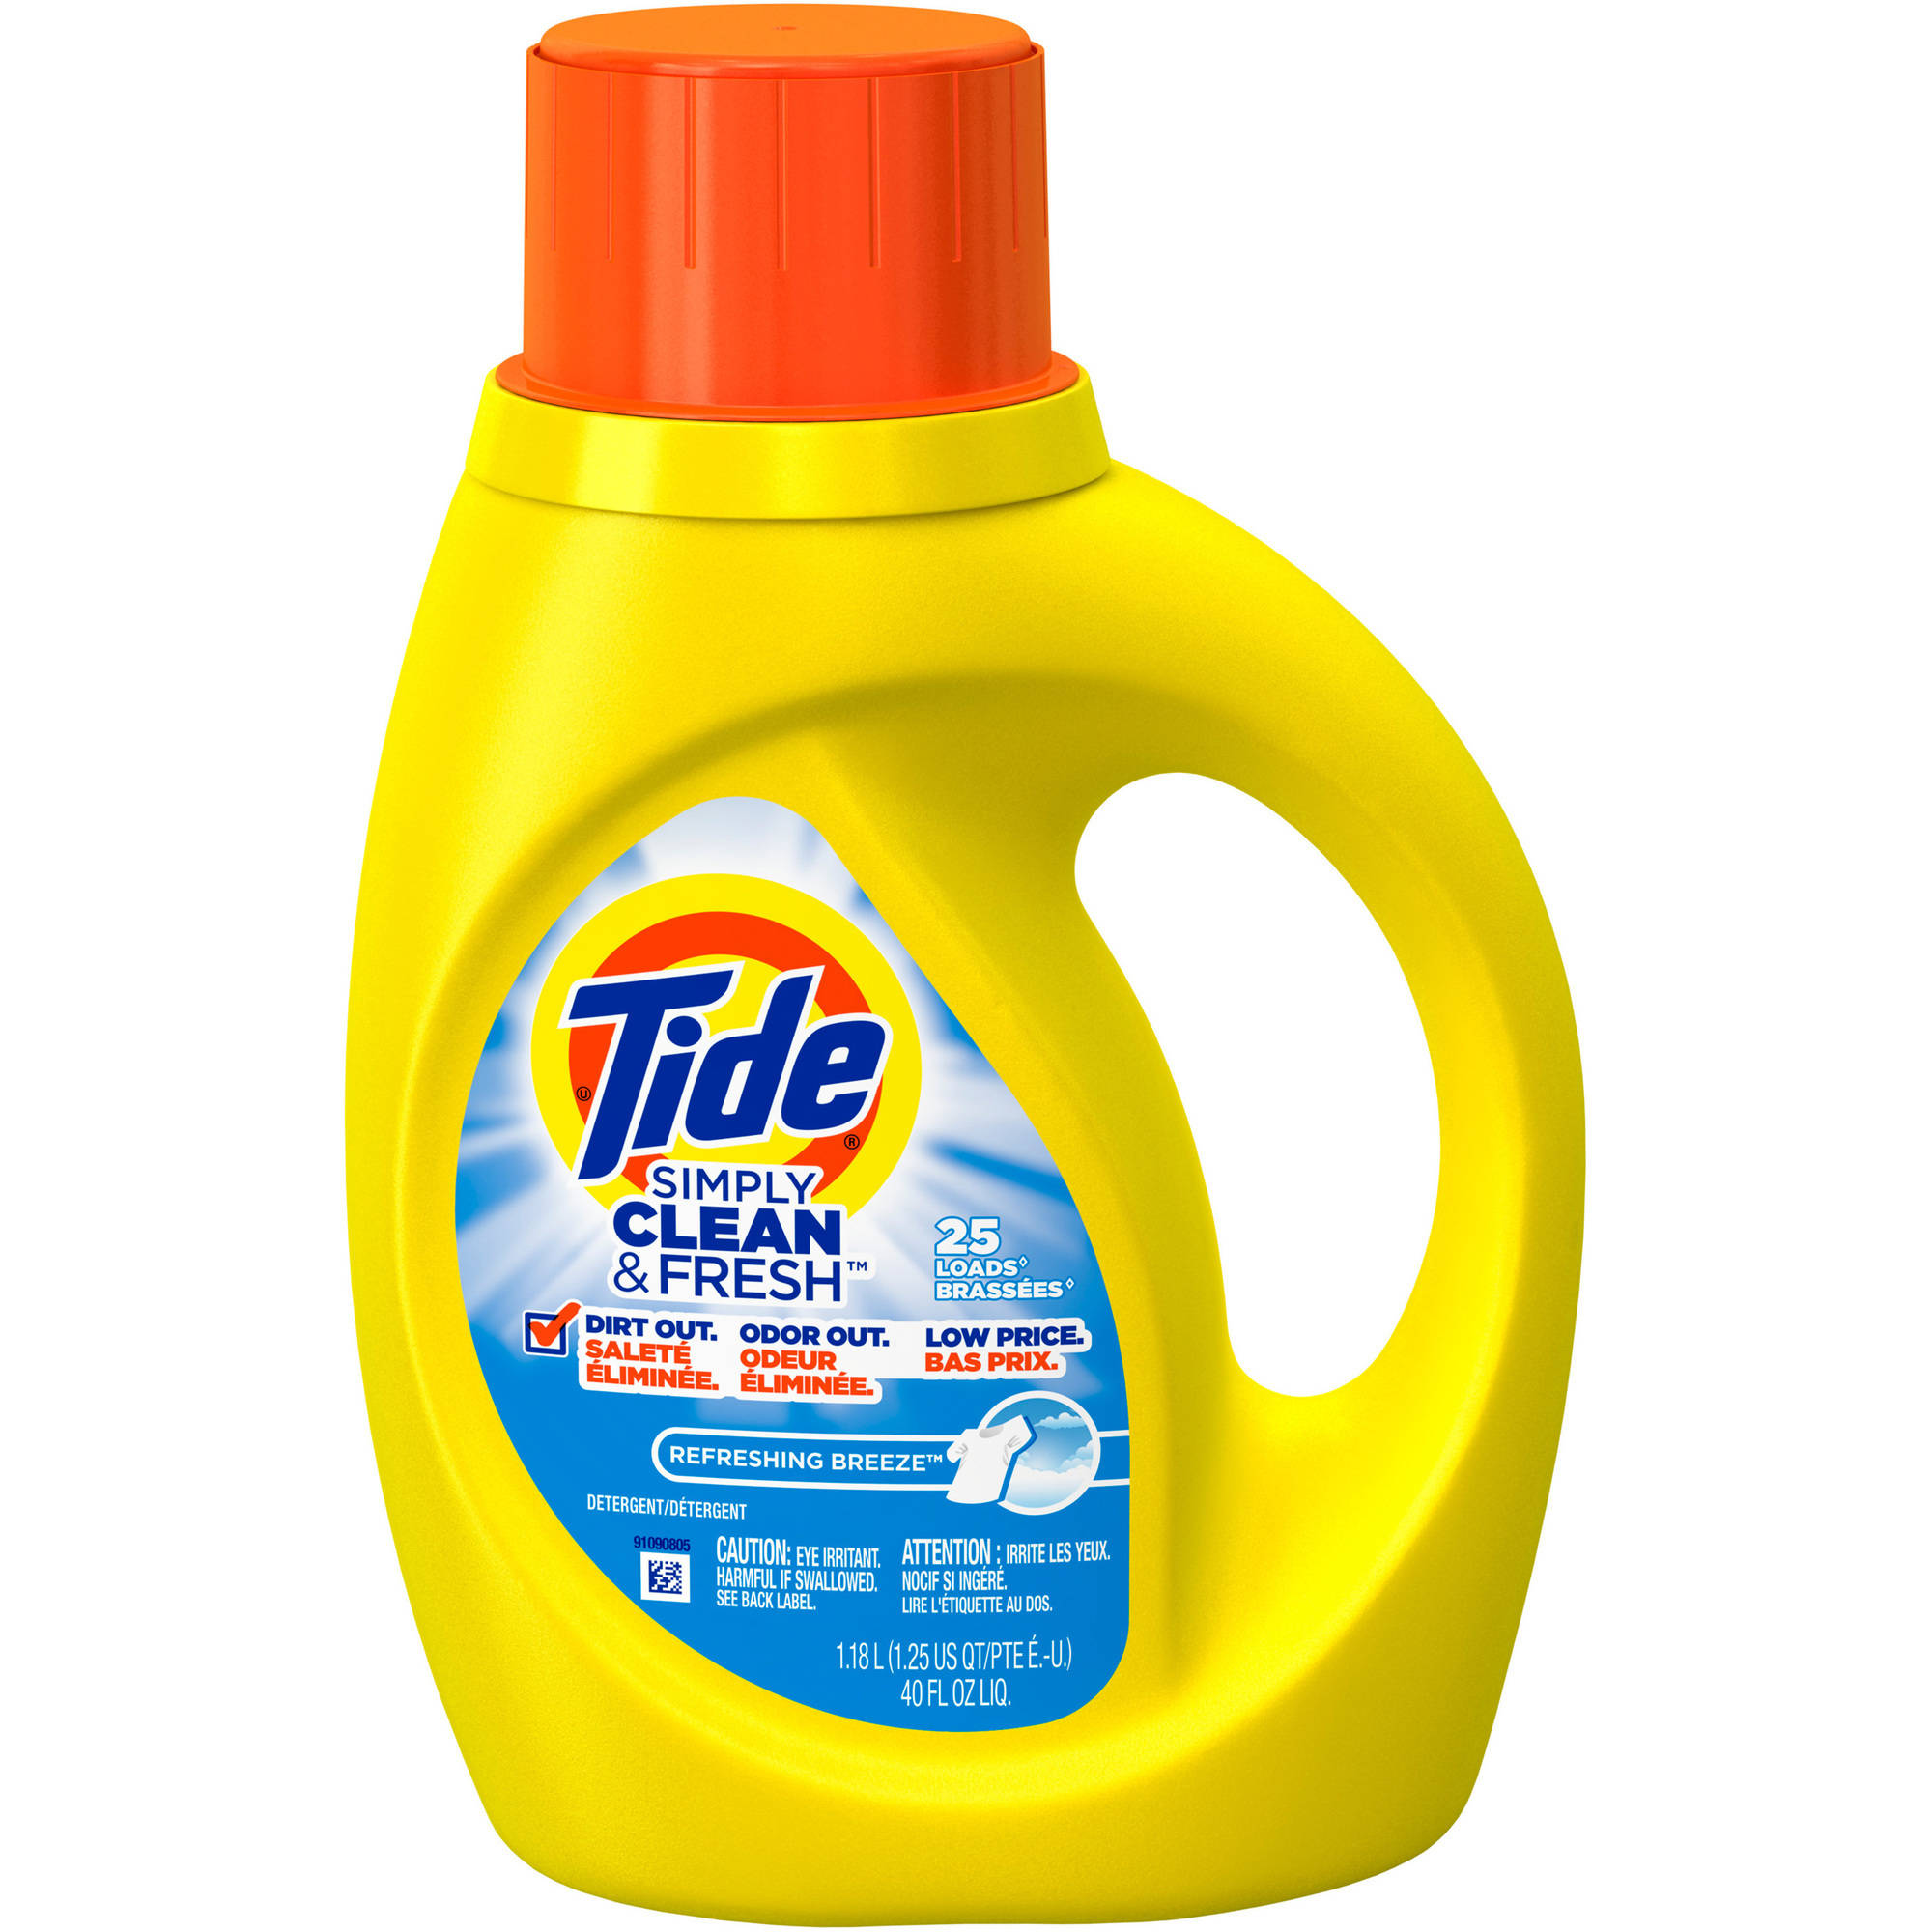 Tide Simply Clean & Fresh HE Liquid Laundry Detergent, Refreshing Breeze Scent, 25 Loads 40 fl oz